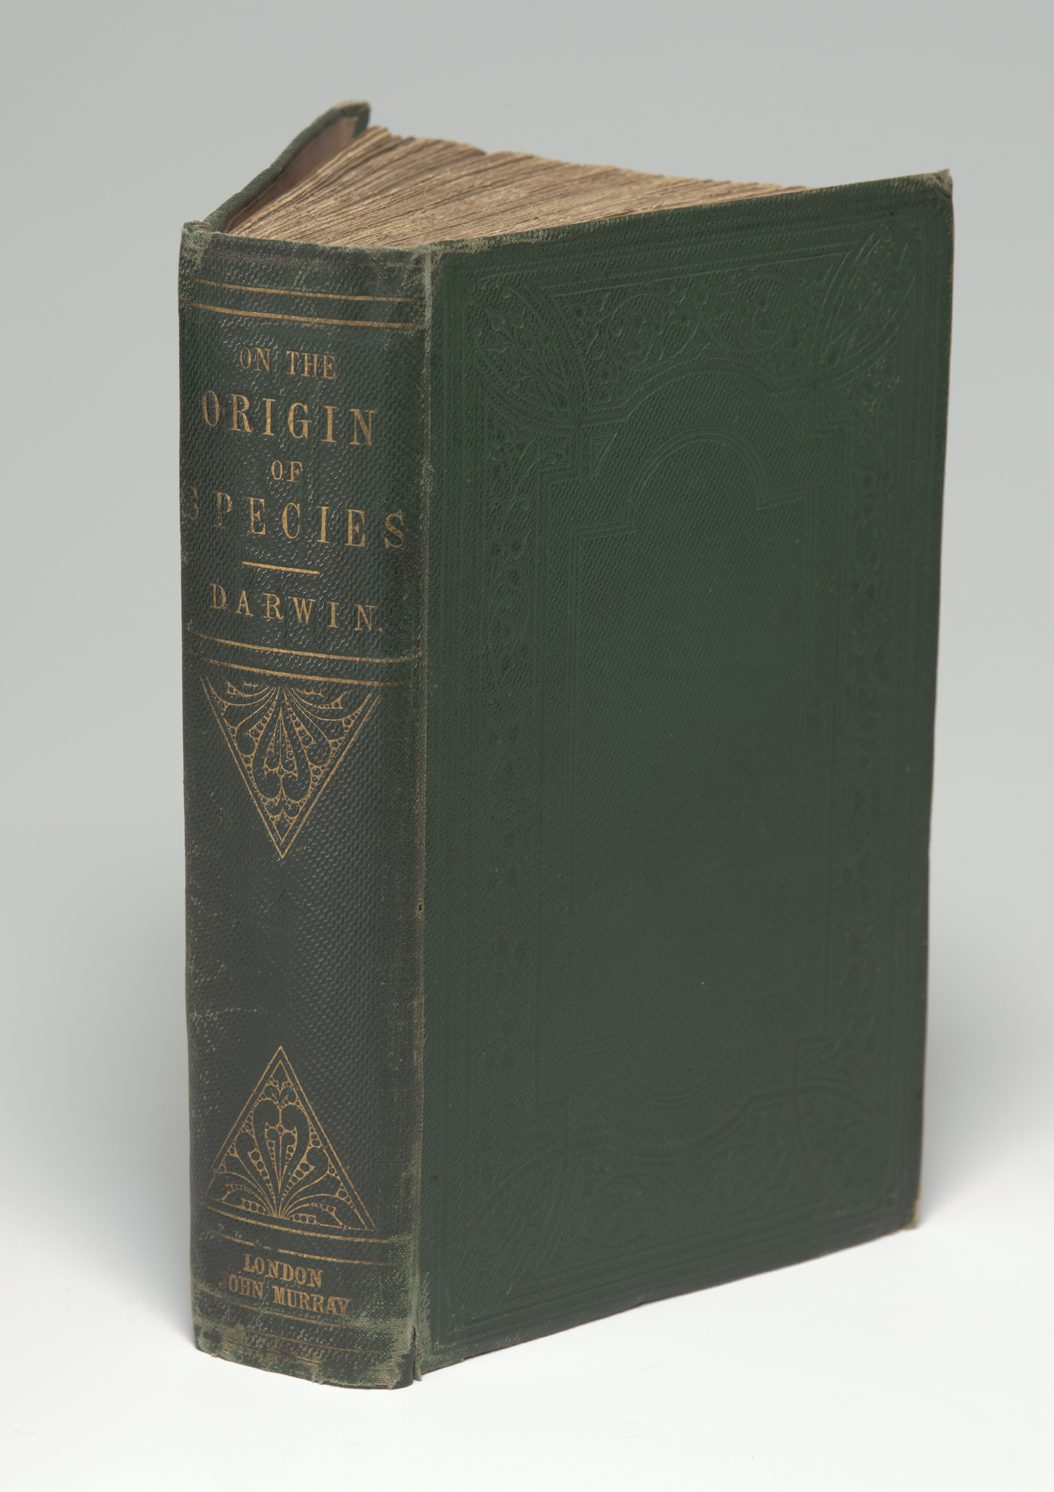 Alfred Russel Wallace's copy of Origin of species, 1859